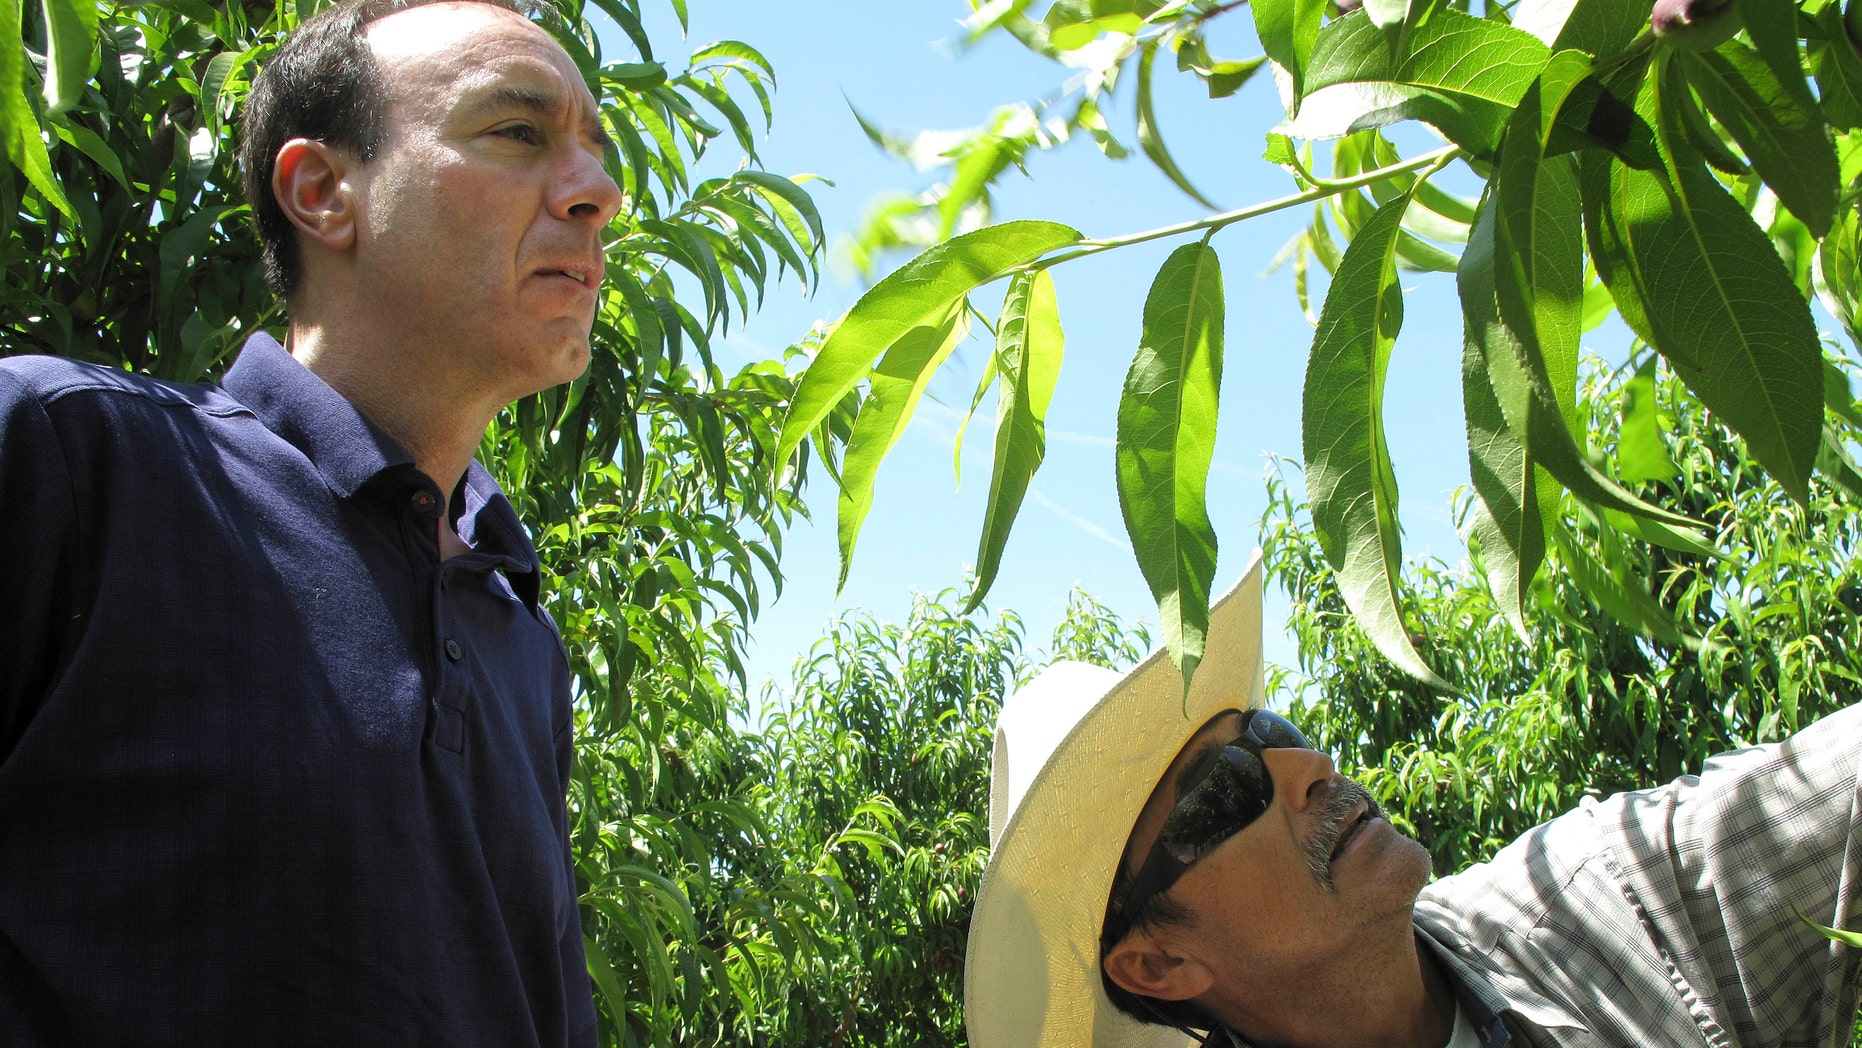 April 29, 2014: In this photo, Dan Gerawan, owner of at Gerawan Farming, Inc., left, talks with crew boss Jose Cabello in a nectarine orchard near Sanger, Calif.